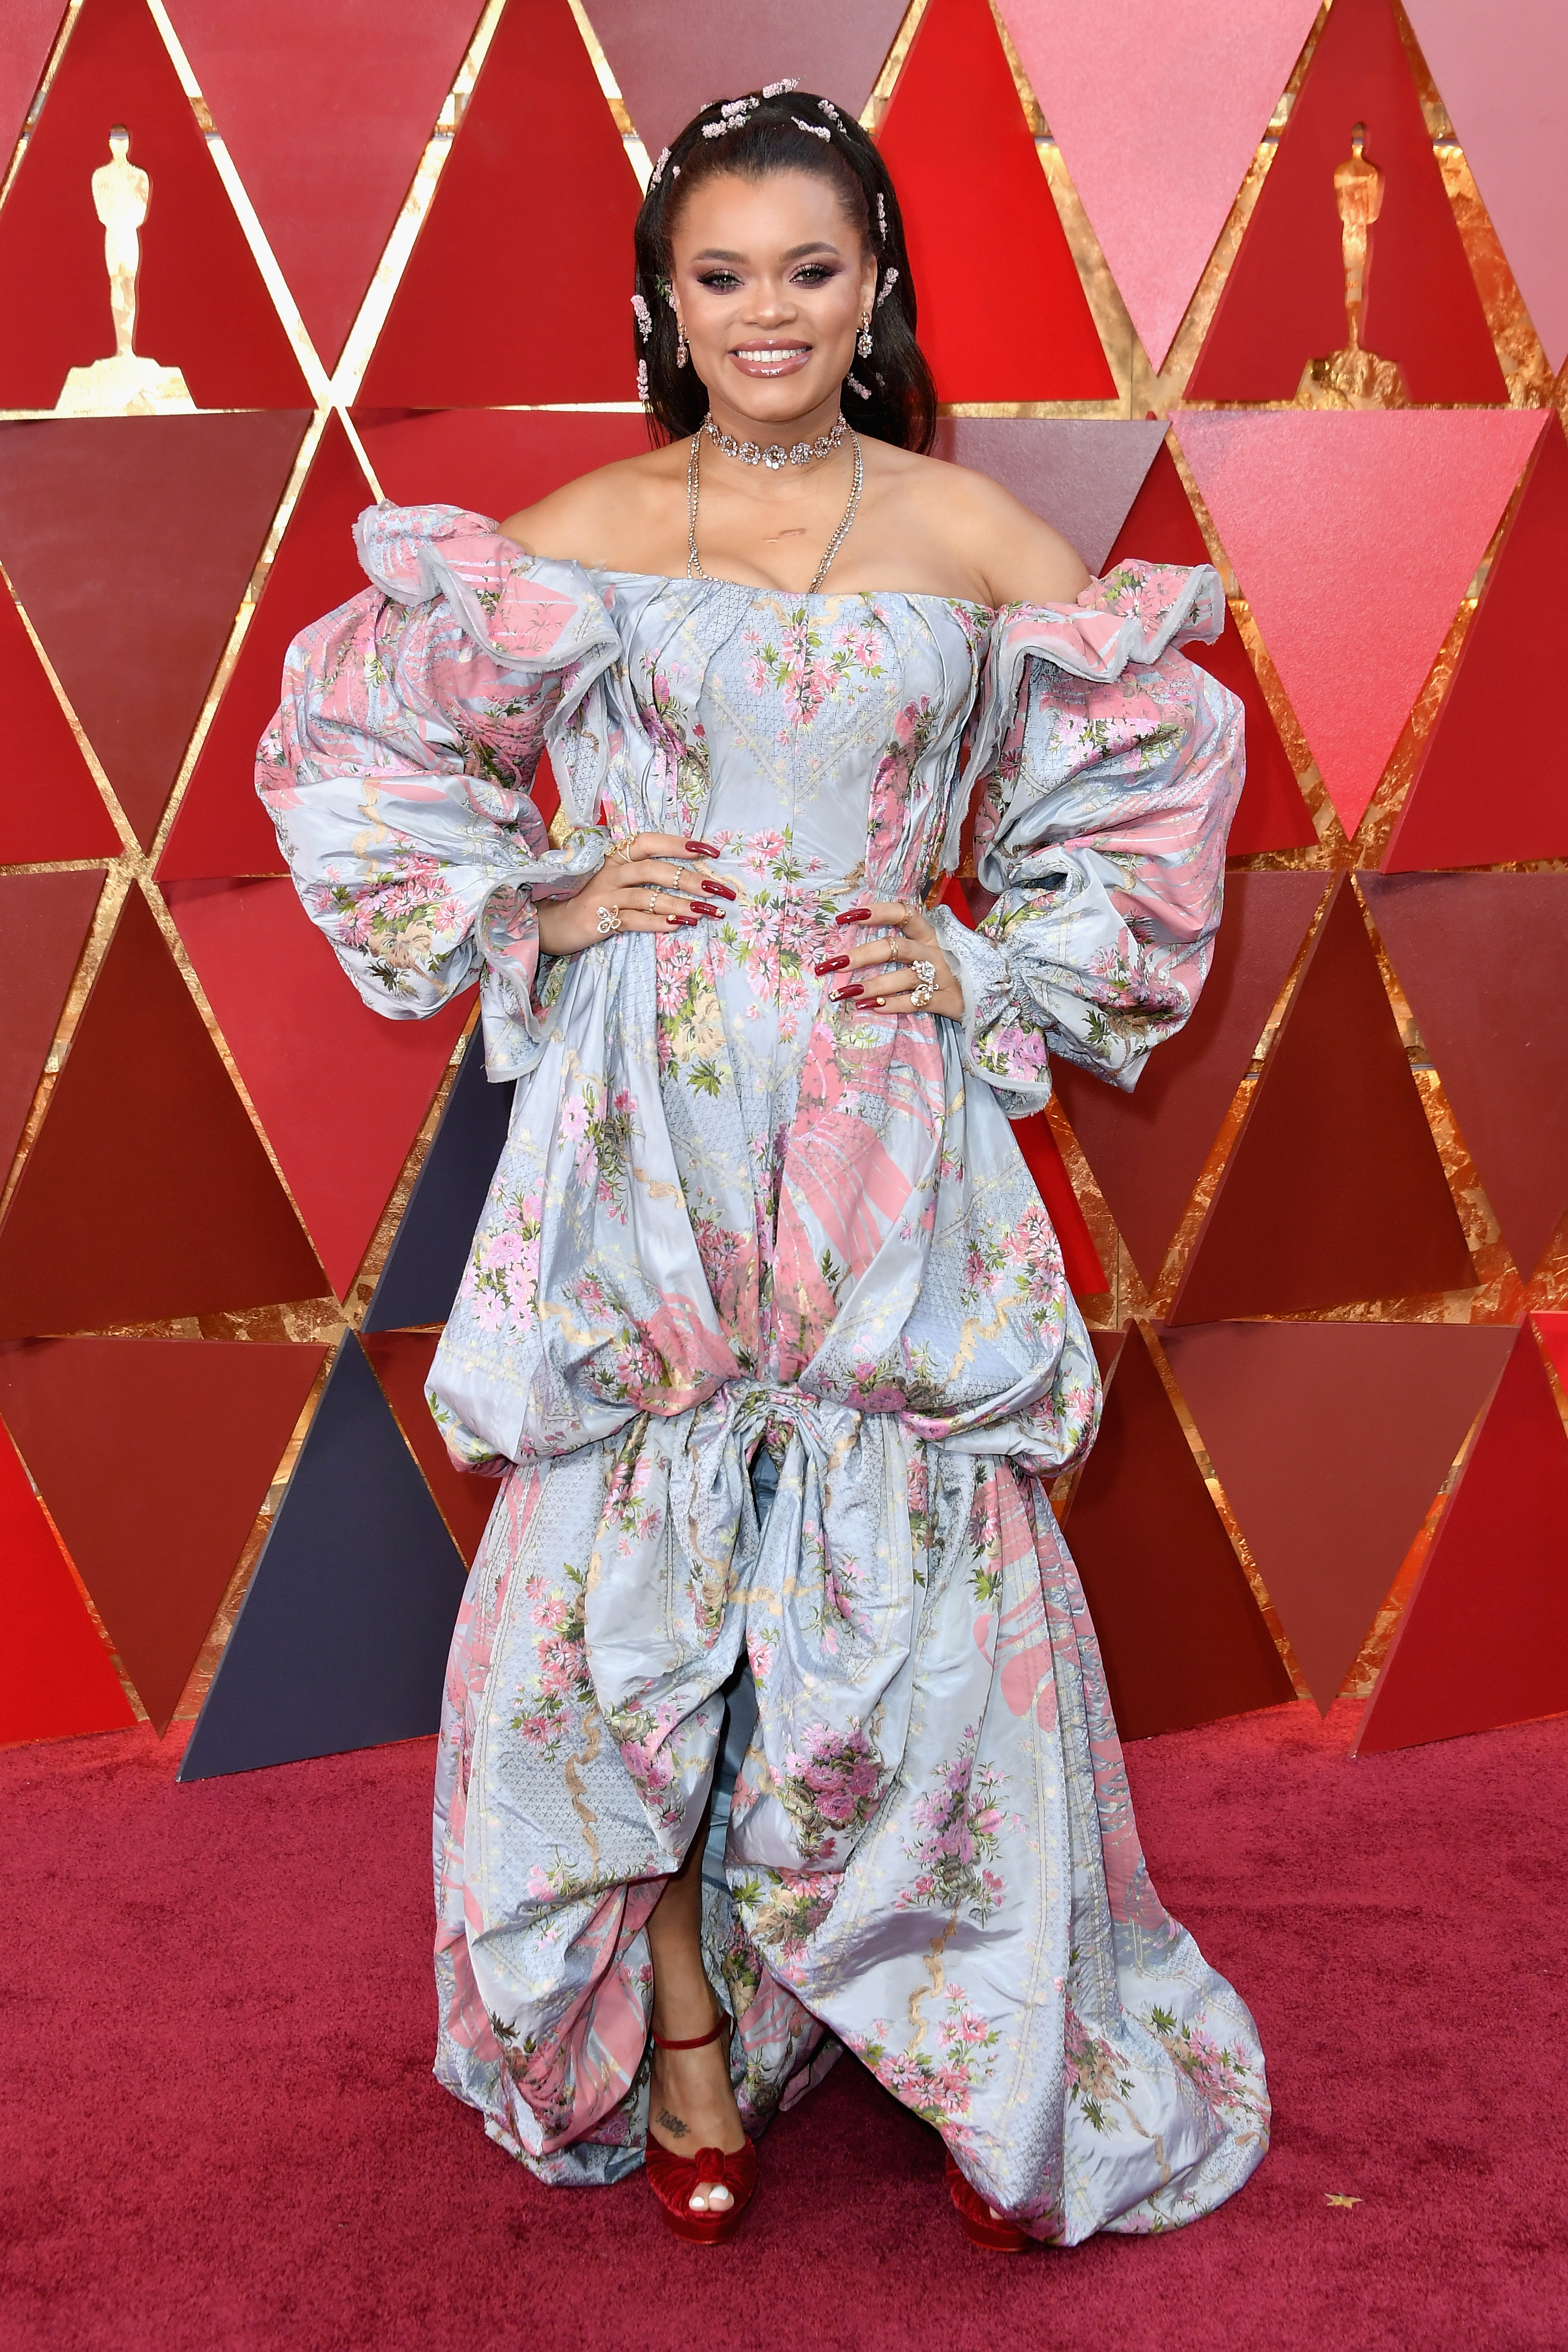 HOLLYWOOD, CA - MARCH 04:  Andra Day attends the 90th Annual Academy Awards at Hollywood & Highland Center on March 4, 2018 in Hollywood, California.  (Photo by Neilson Barnard/Getty Images)